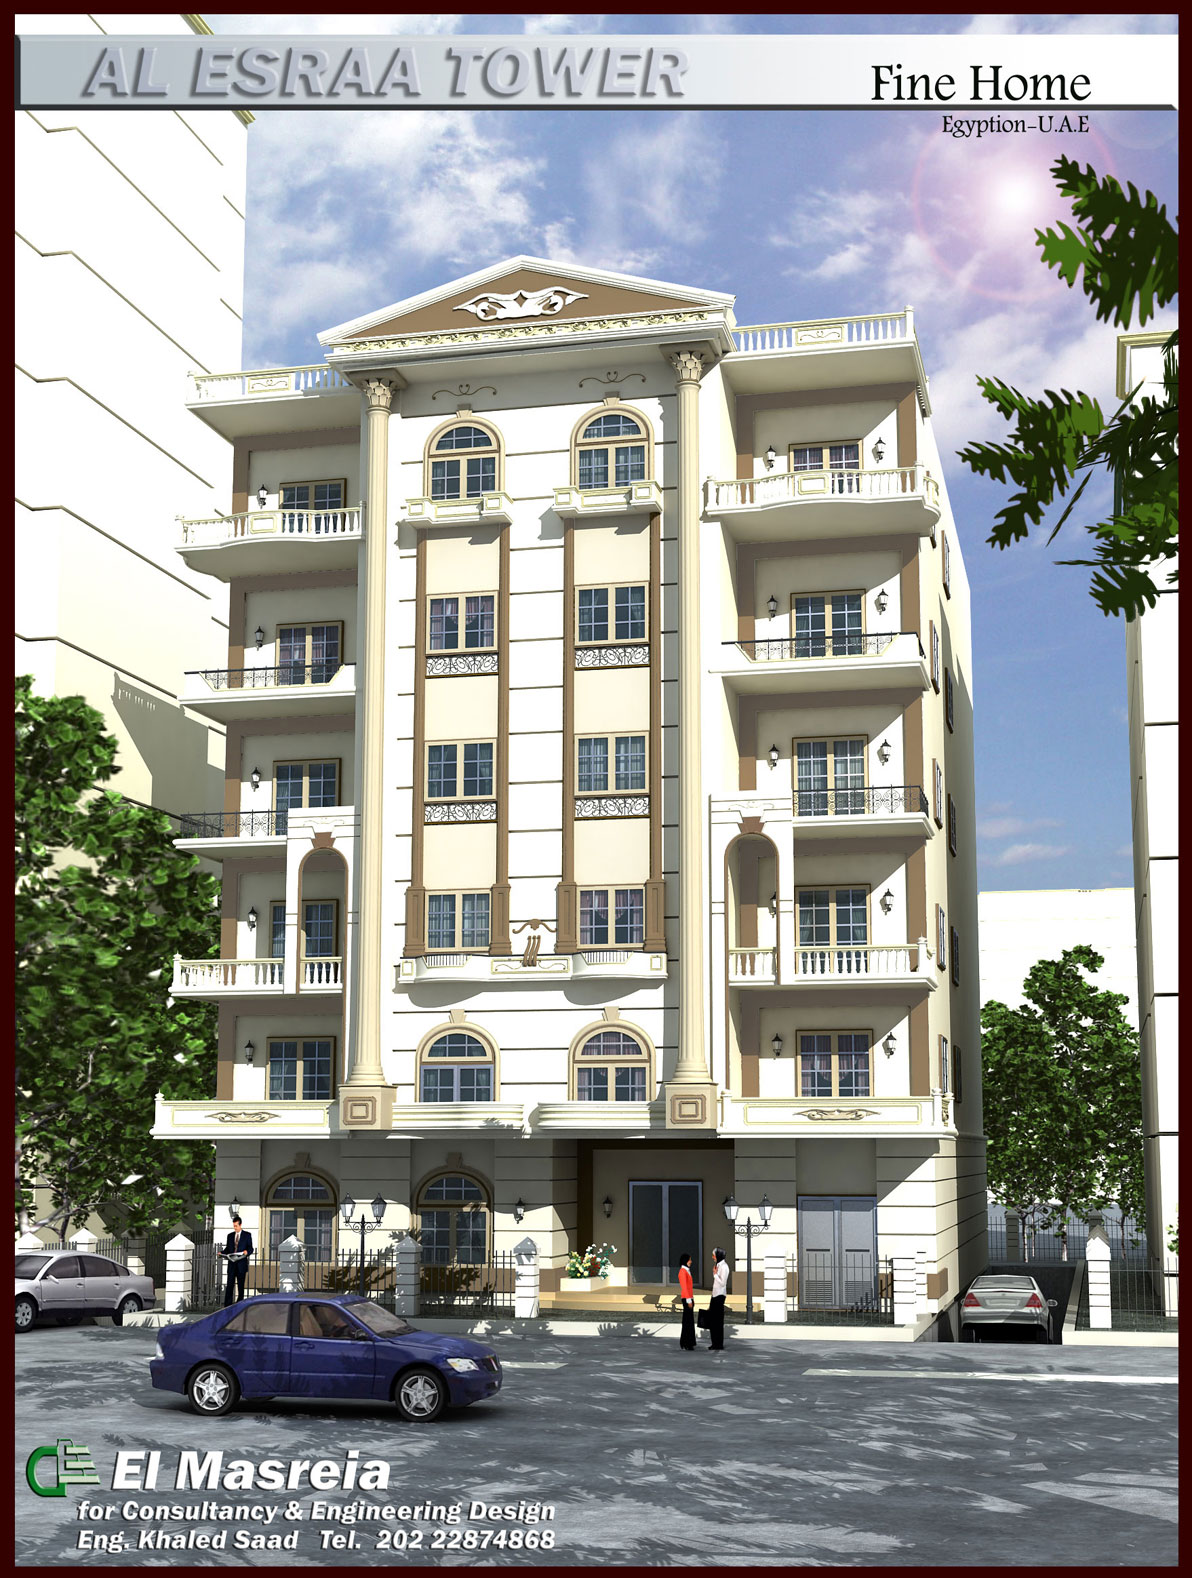 Apartment No.1 Al-Israa Building in Egypt